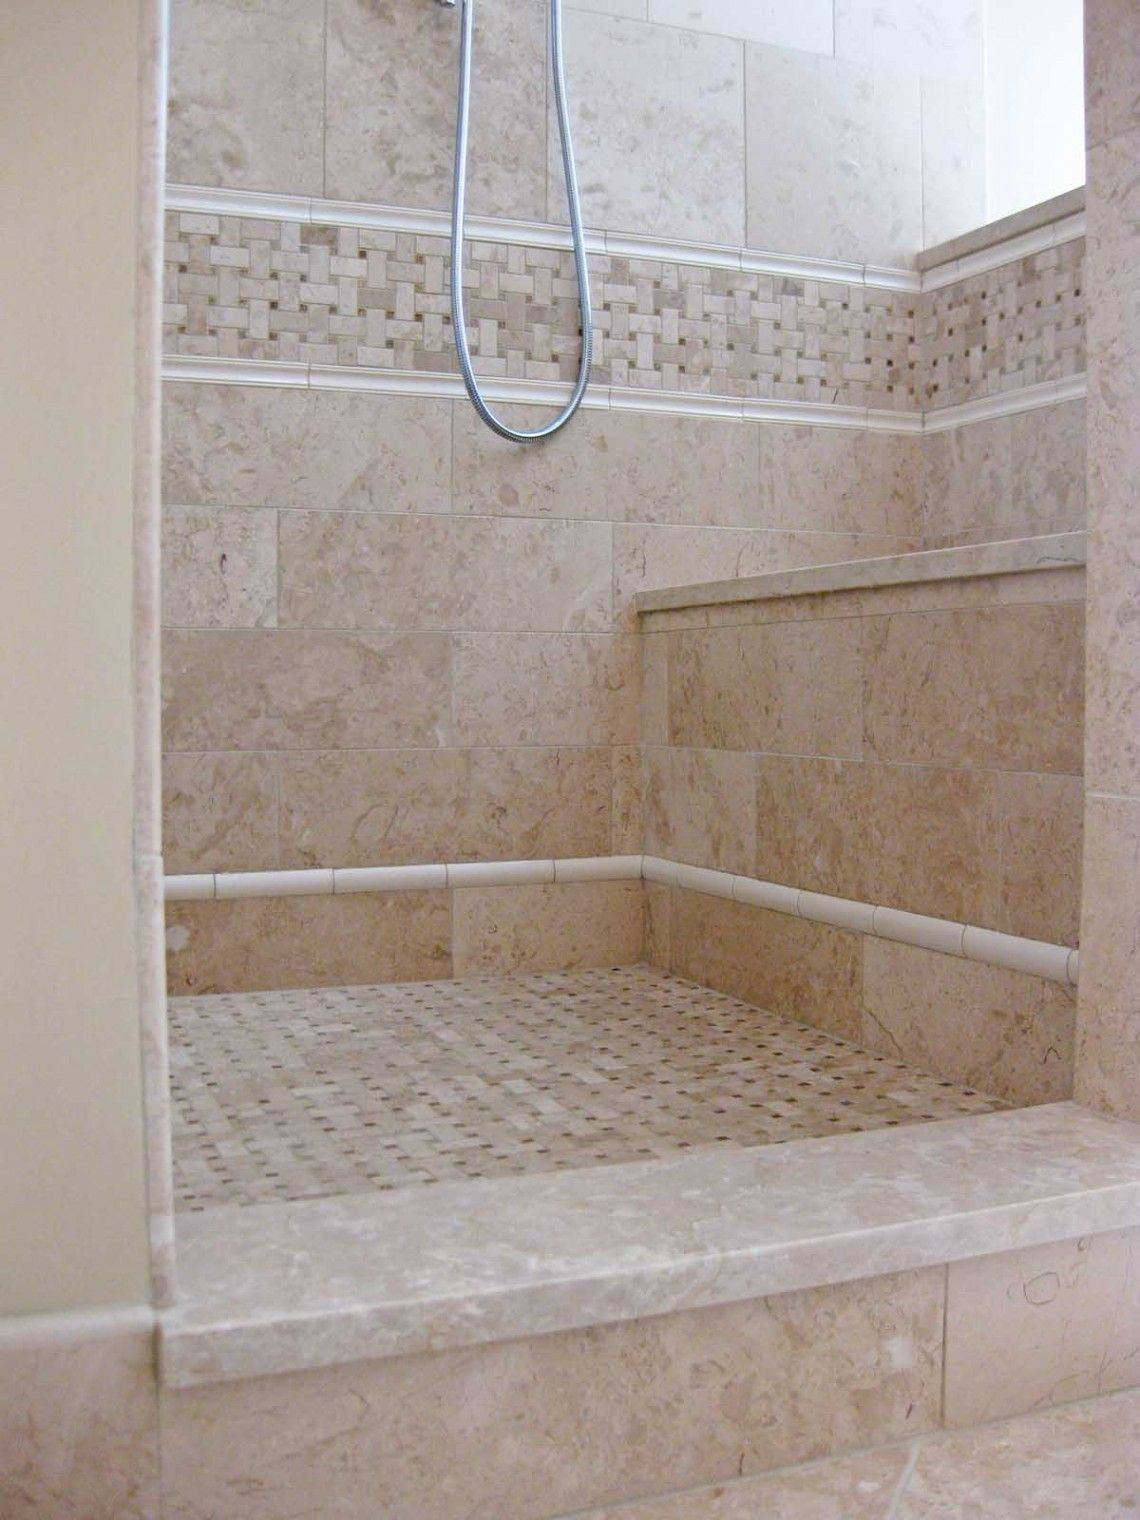 Sib shower basket weave tile stone threshold shower tile - How do heated bathroom floors work ...